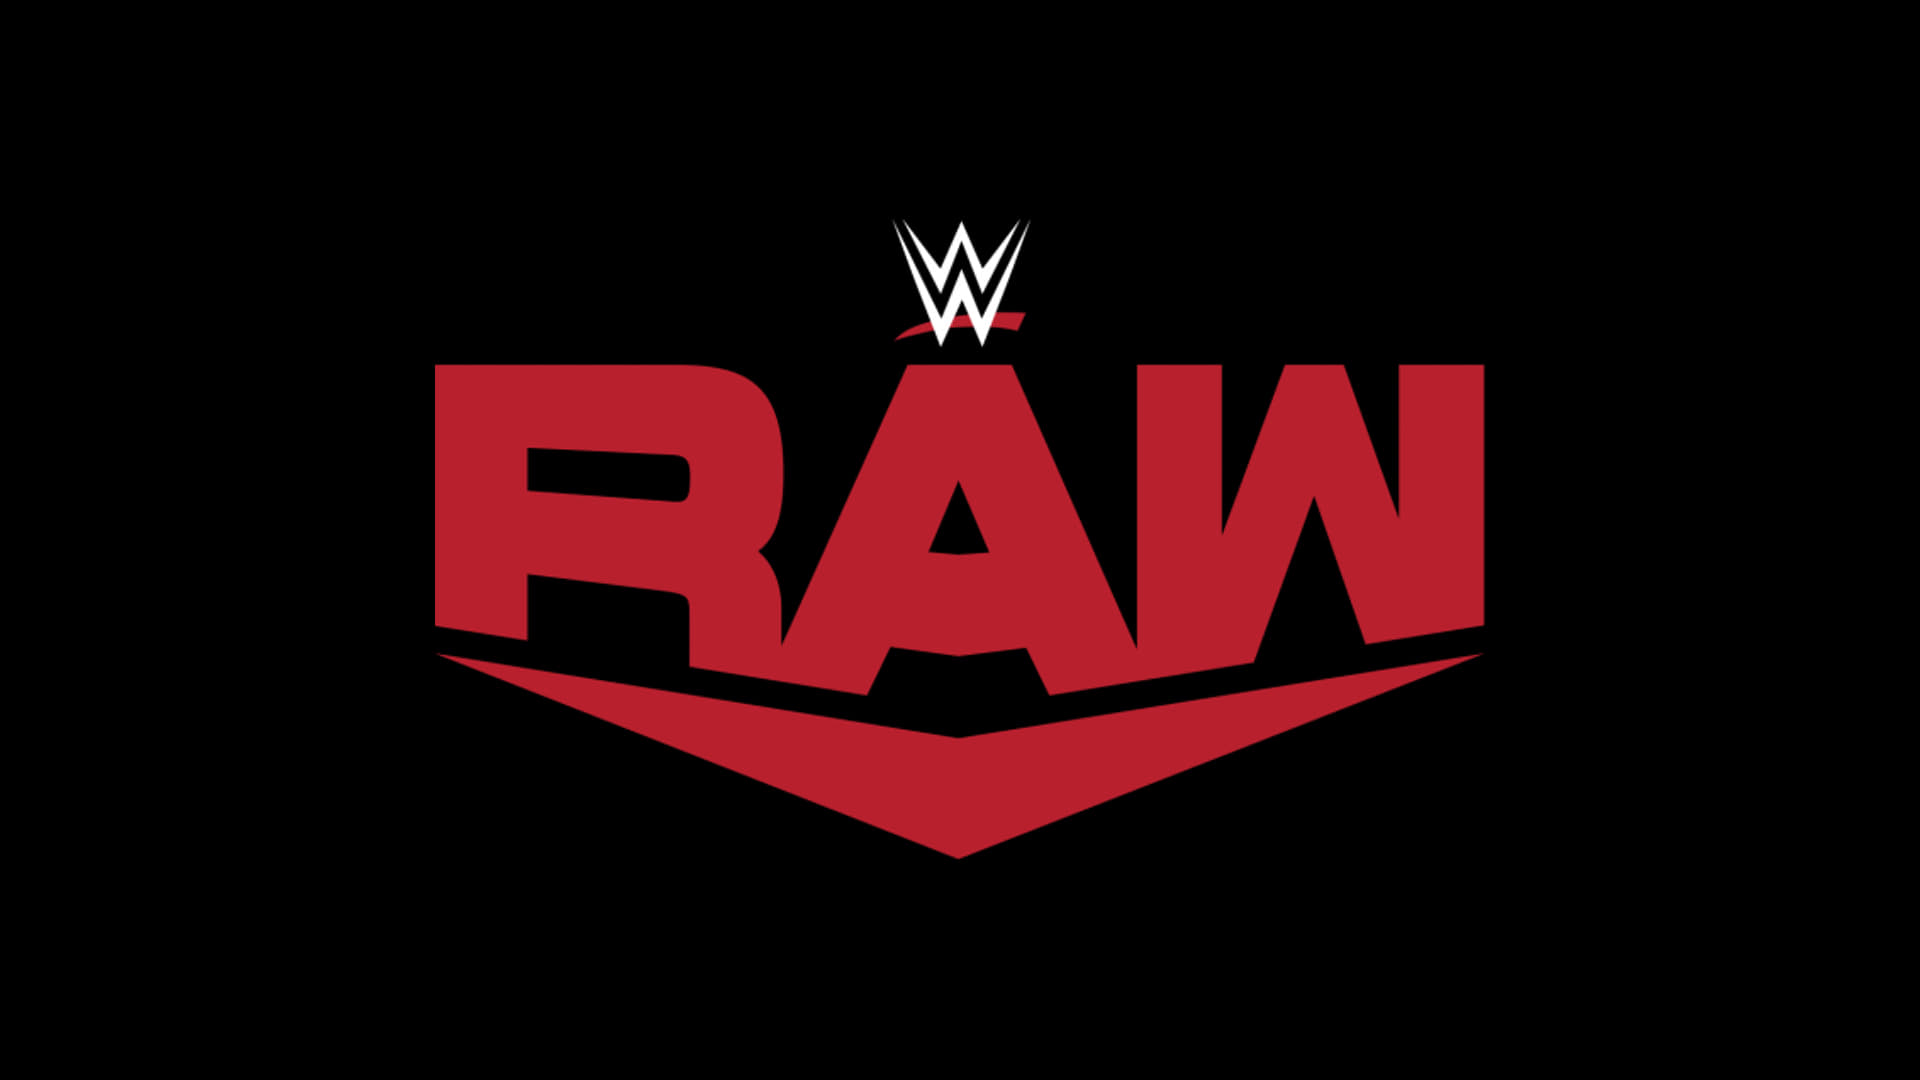 WWE Raw - Season 18 Episode 18 : May 3, 2010 (Jacksonville, FL)